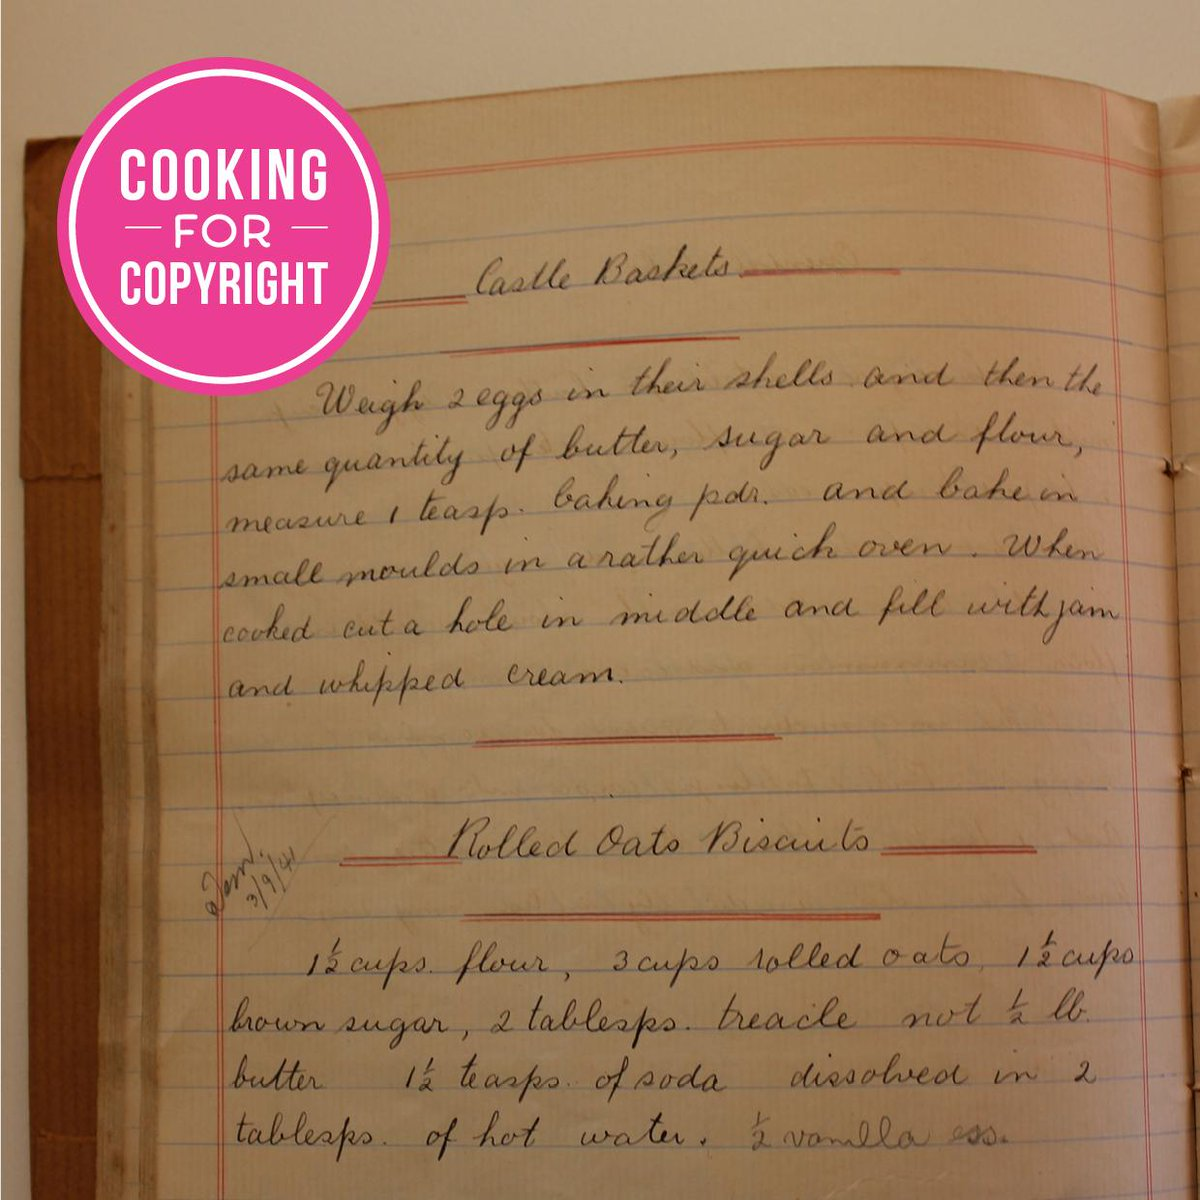 We're #cookingforcopyright Unpublished and published works should have the same copyright term. Set content free! http://t.co/FYyBDNTr8t